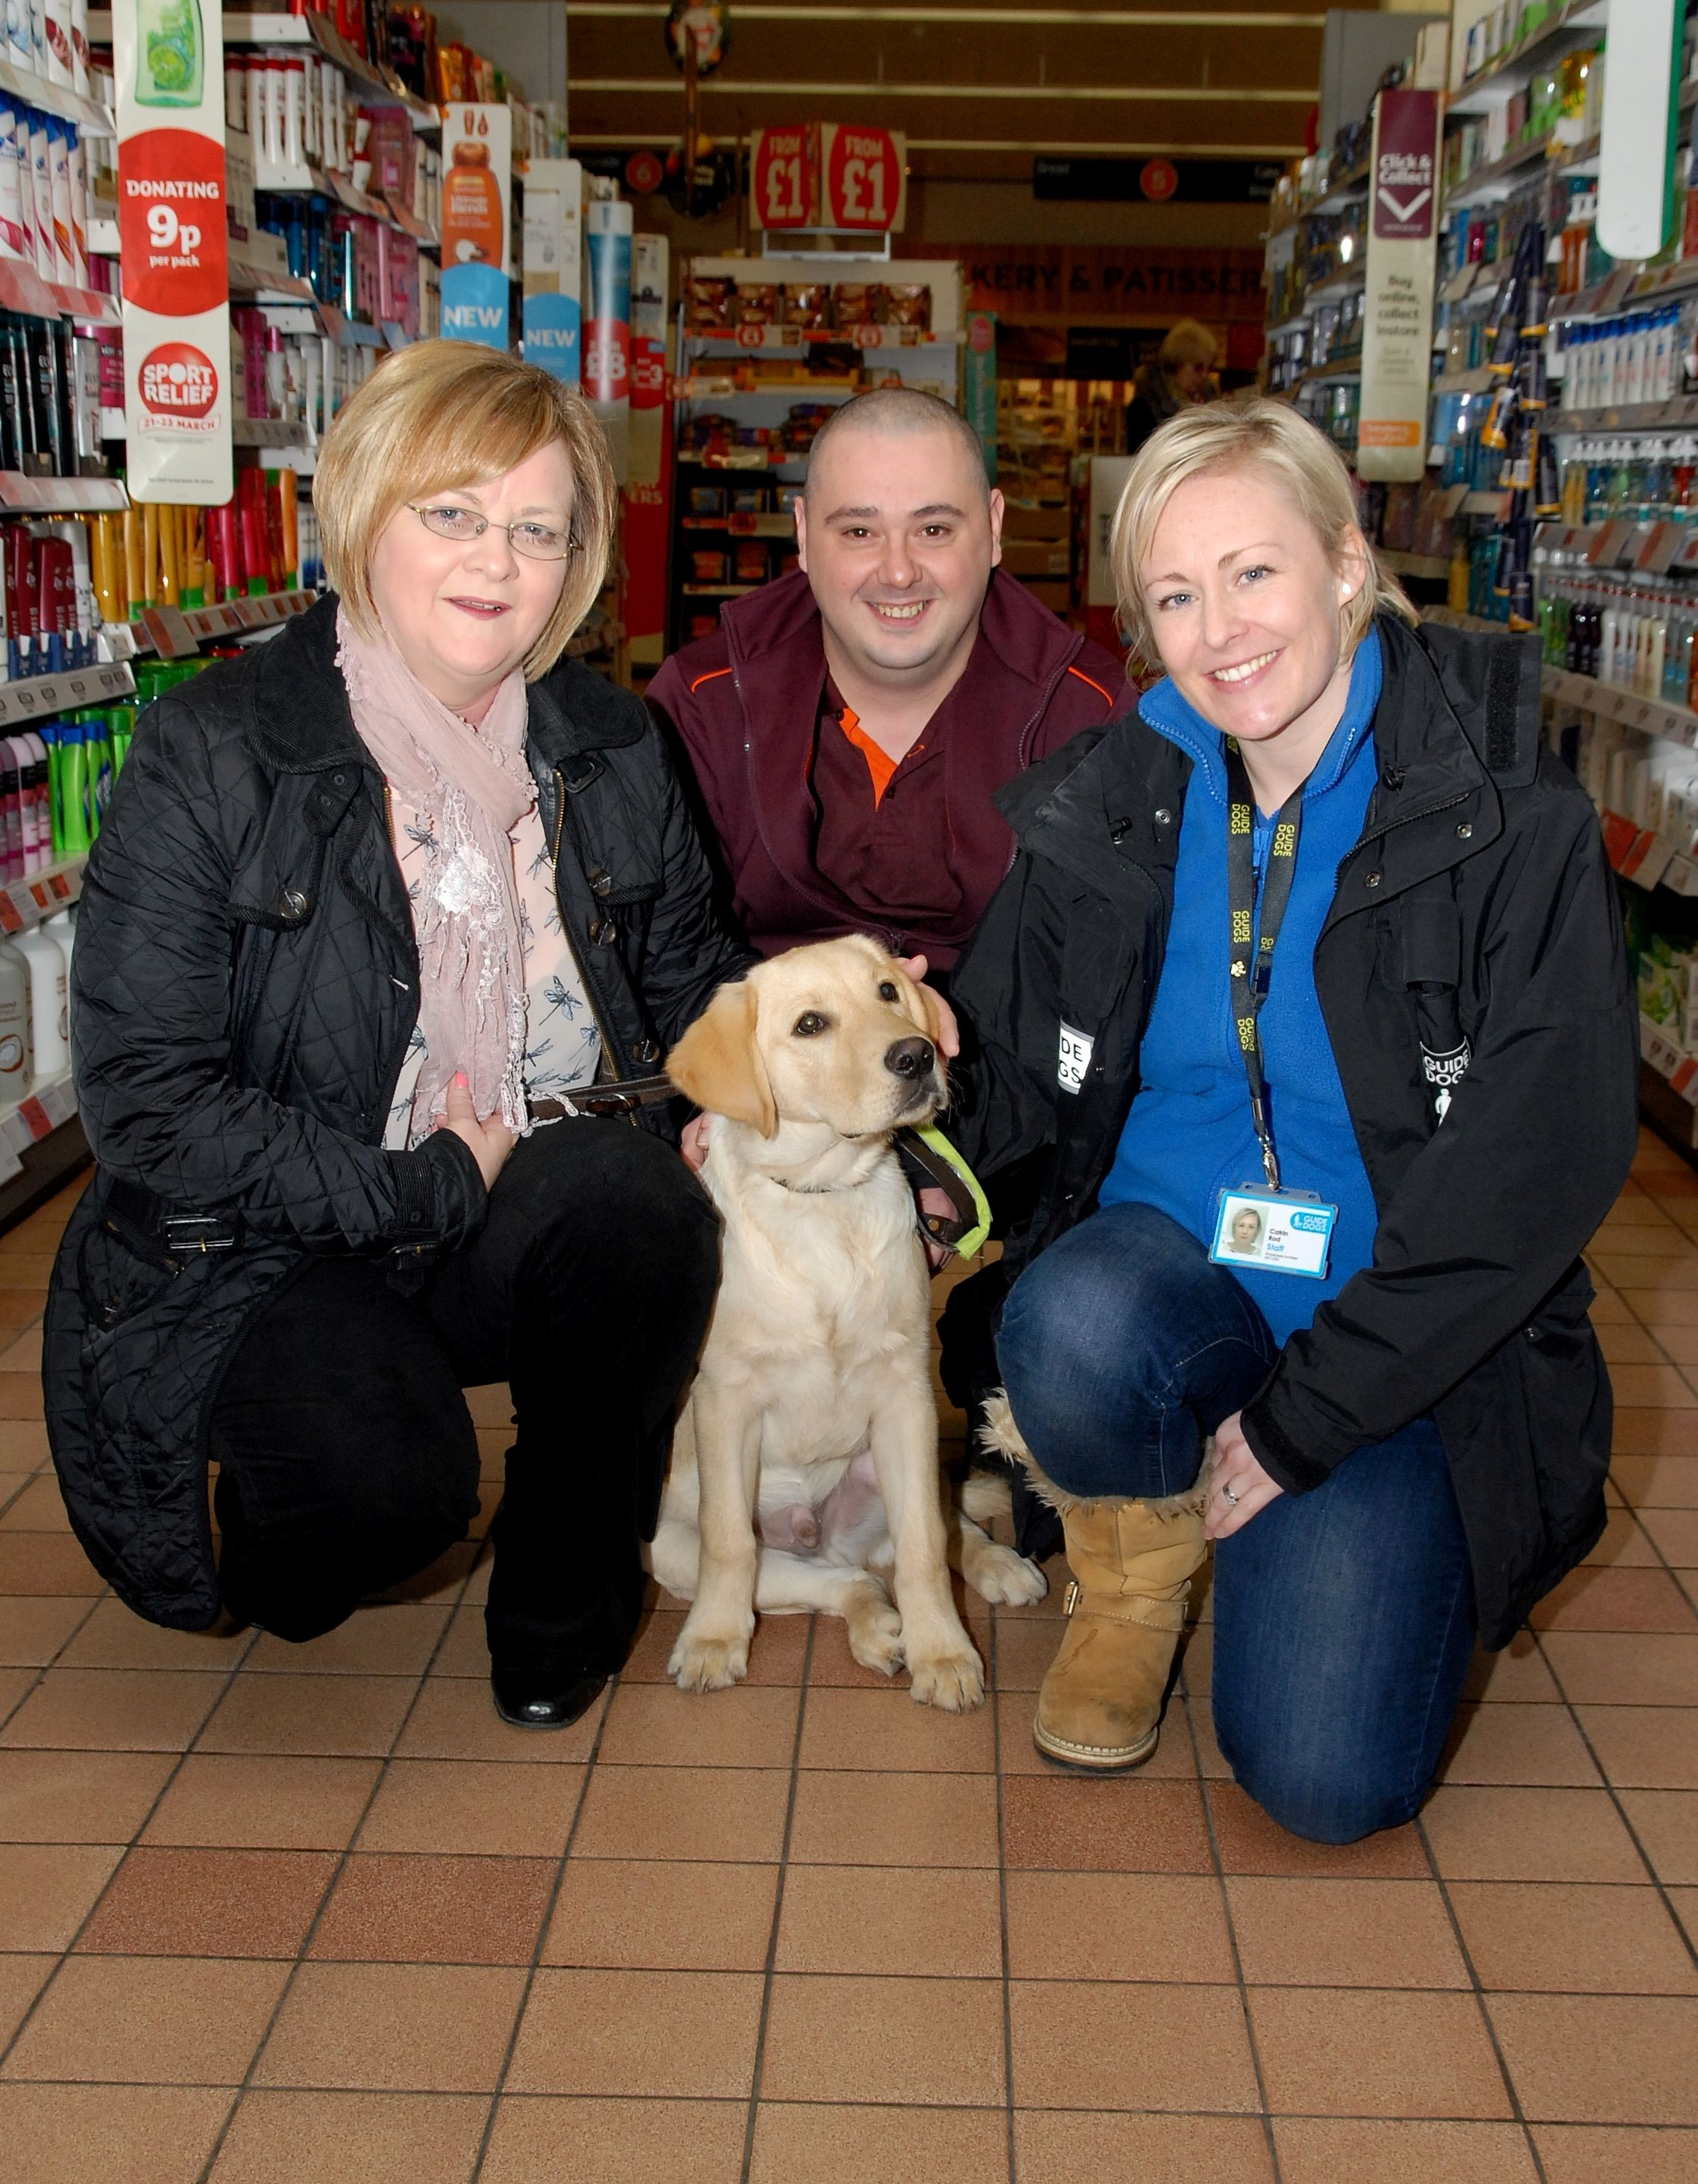 Poignant guide dog visit to city supermarket